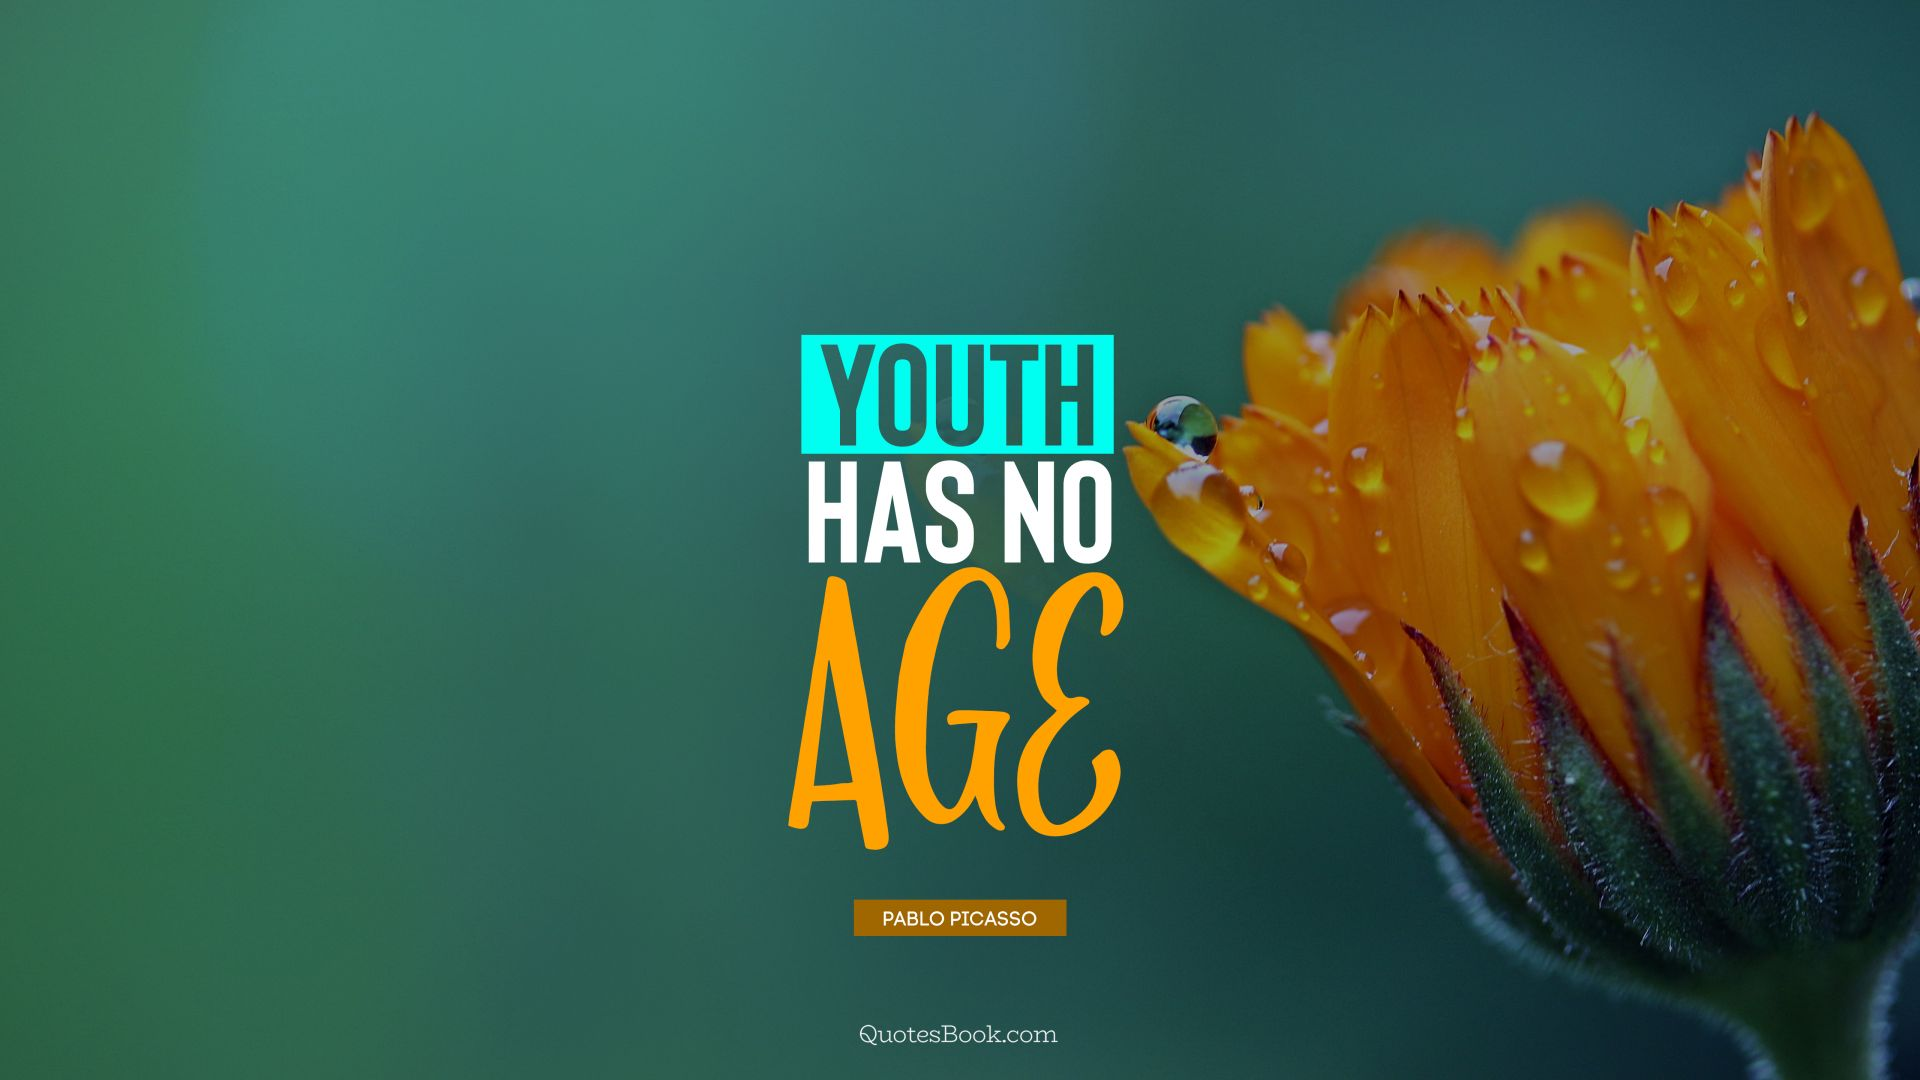 Youth has no age. - Quote by Pablo Picasso